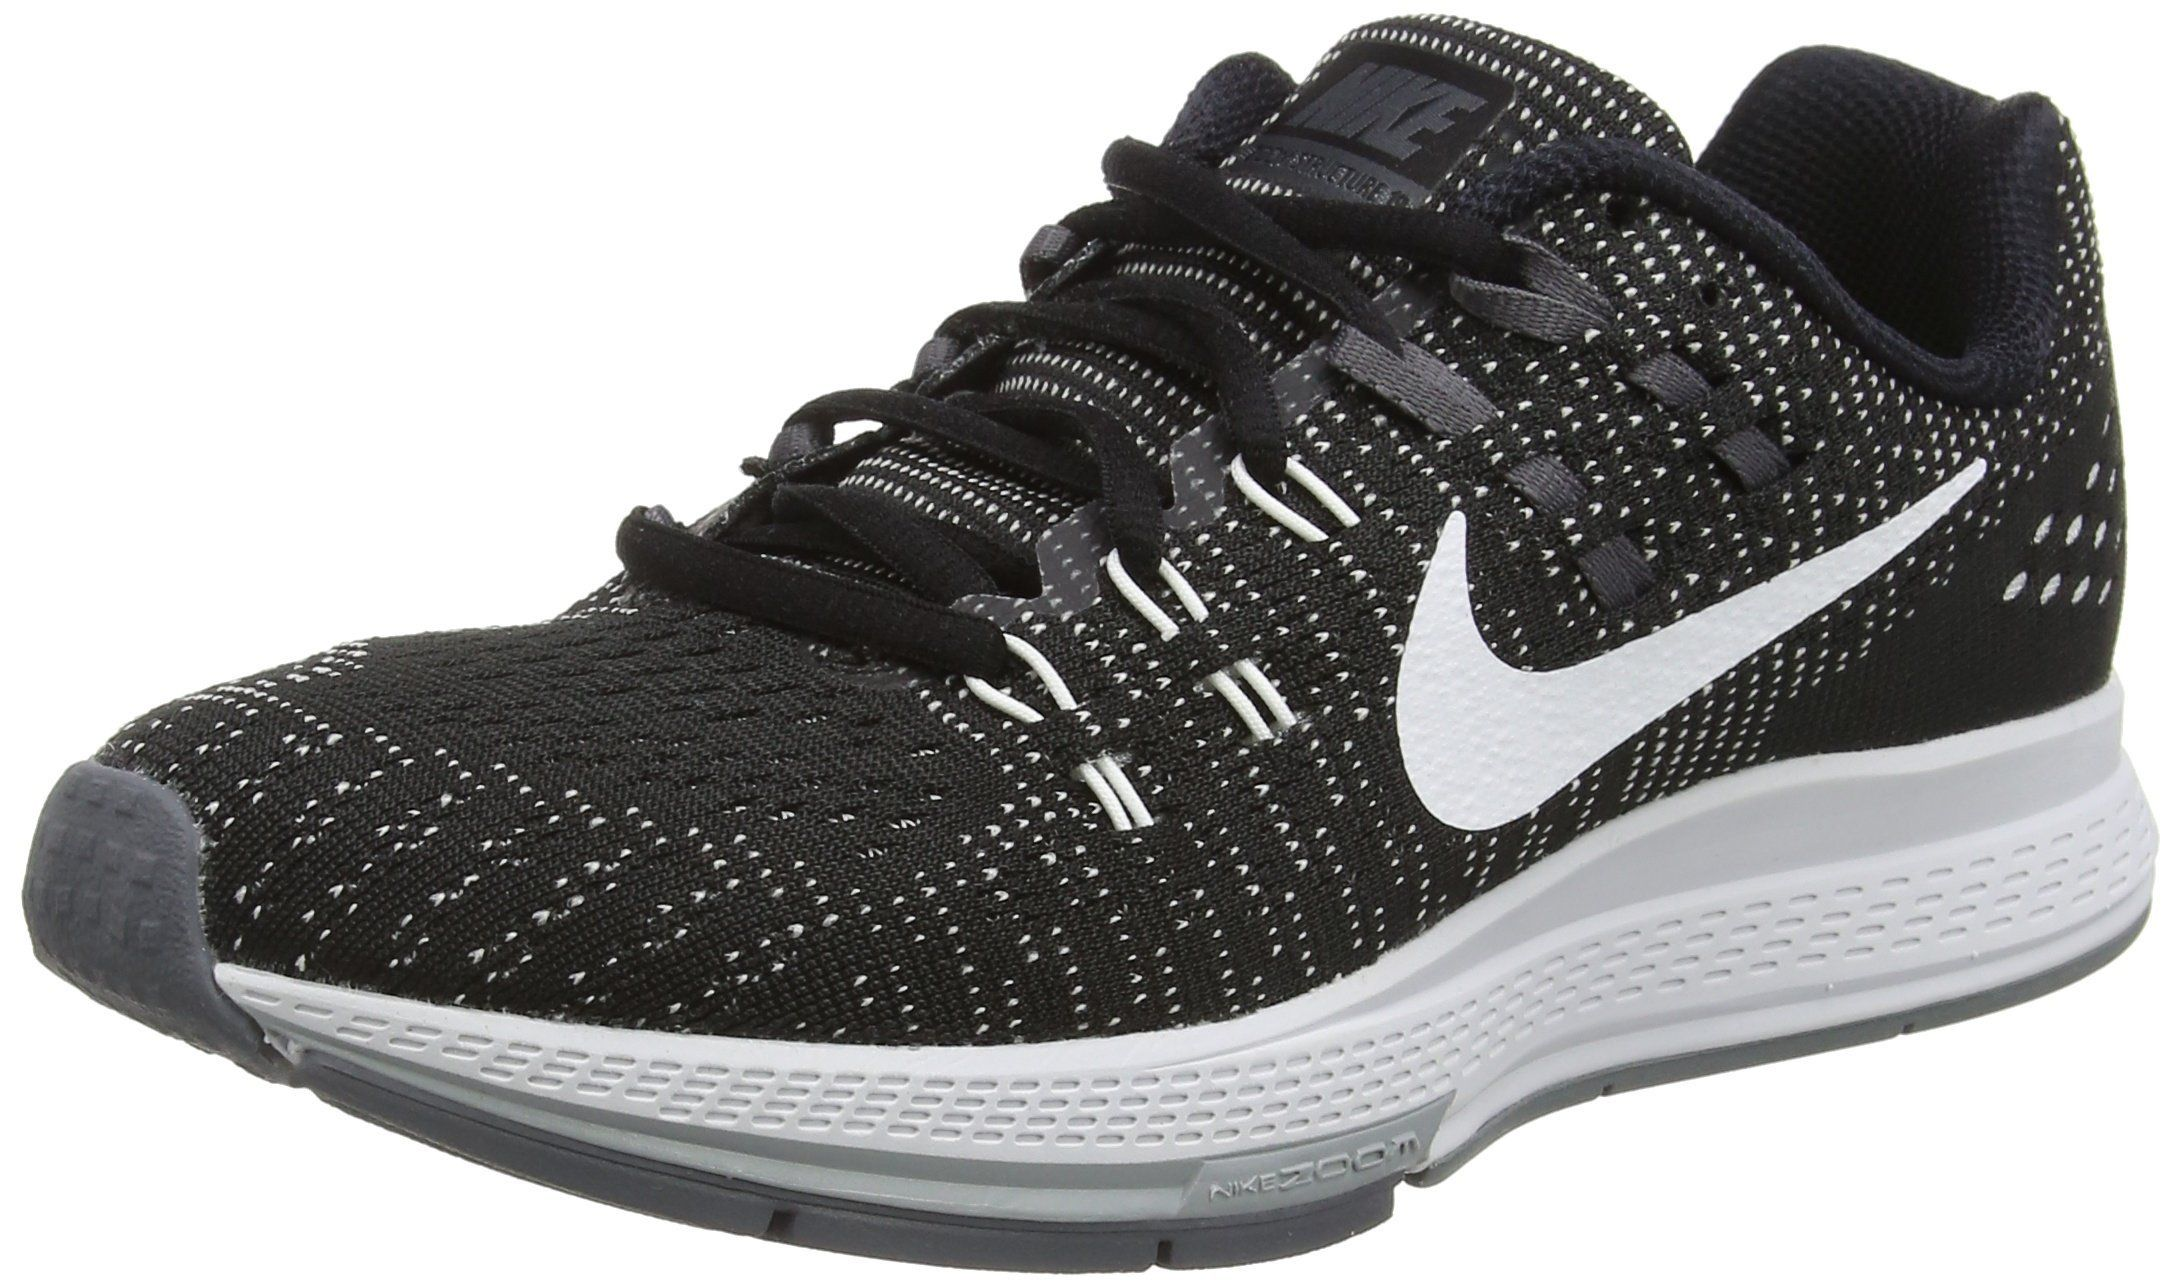 90356e5e891 Nike Air Zoom Structure 19 Running Shoe - Womens Black Dark Grey Cool  Grey White